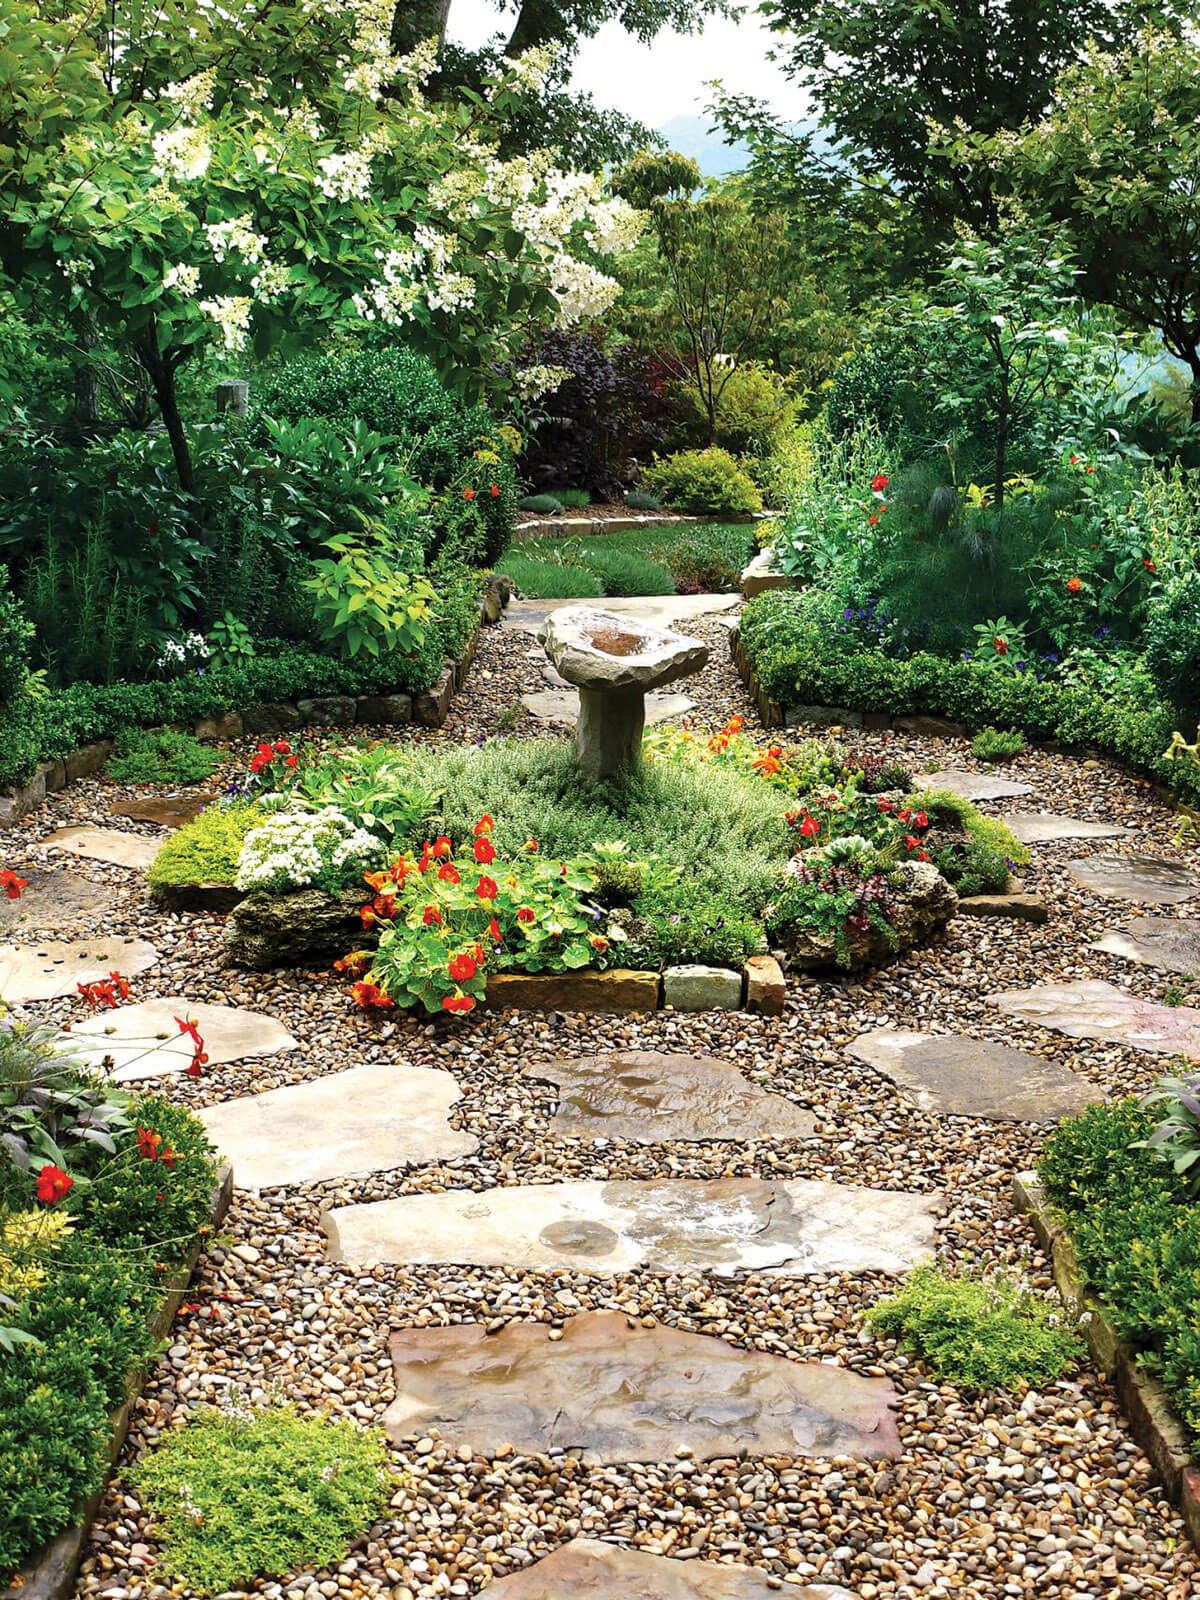 16 Design Ideas for Beautiful Garden Paths